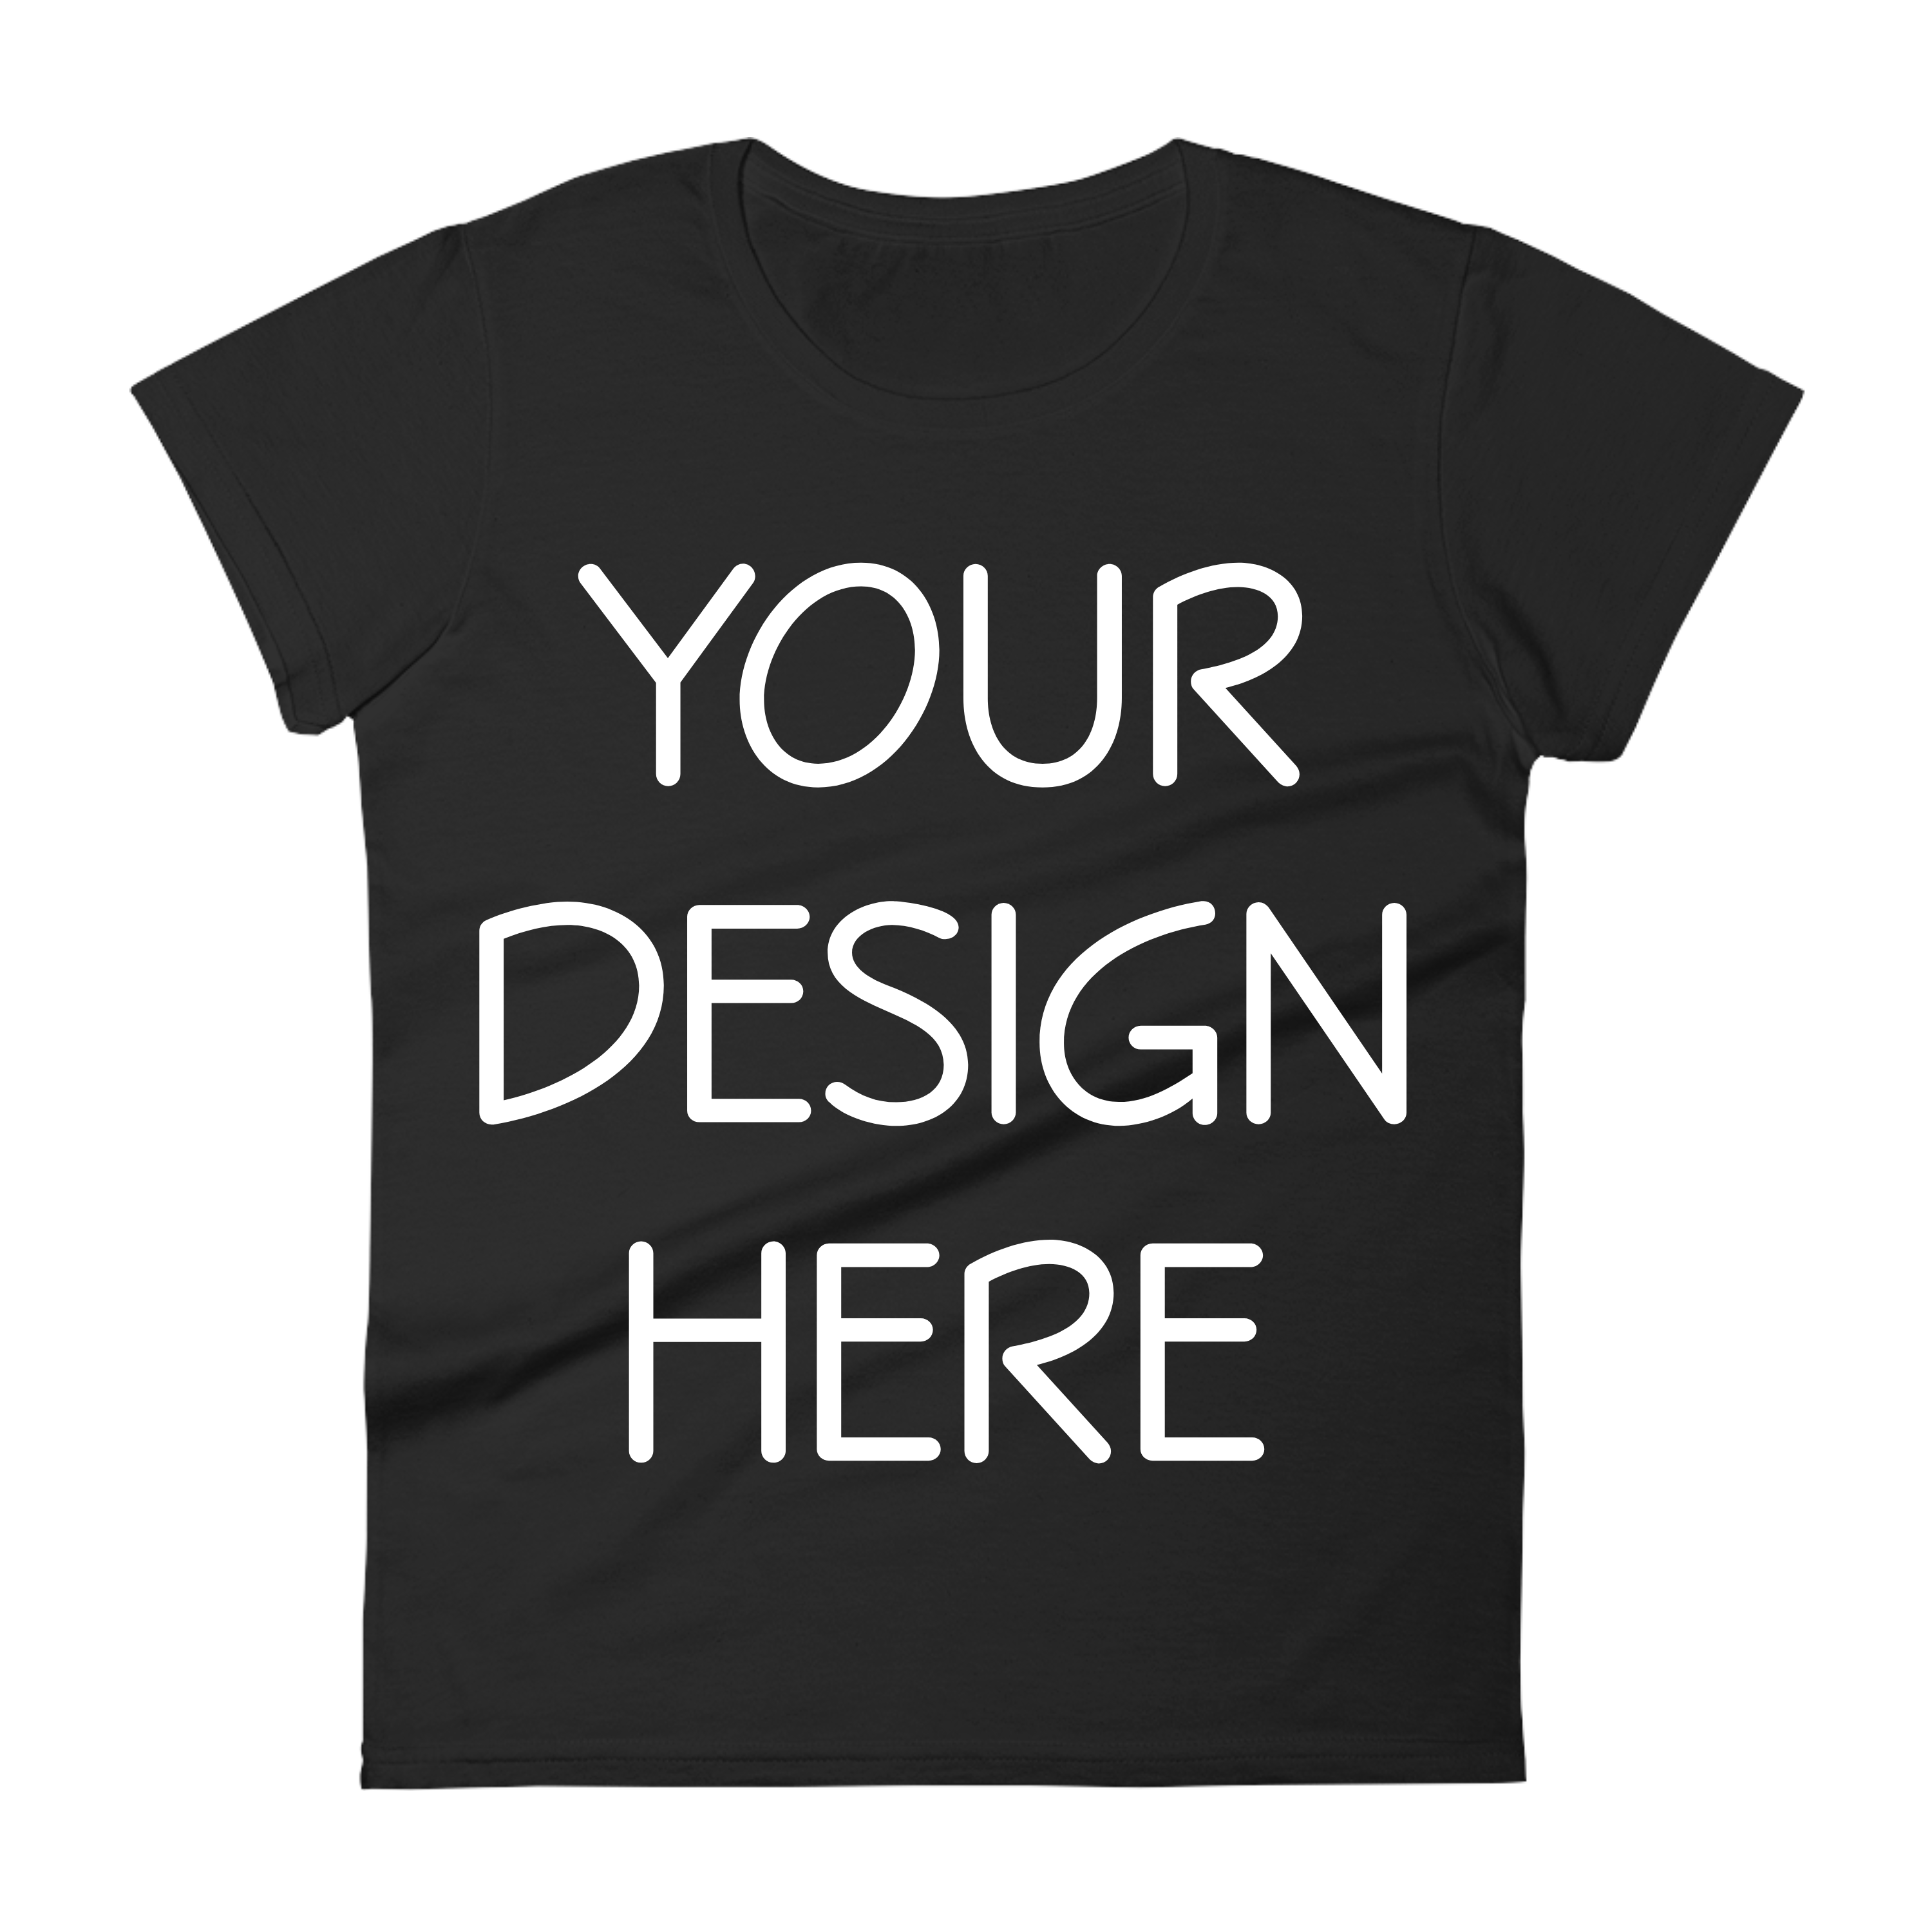 Anvil 880 Ladies Fit T-Shirt Mockups - 17 | PNG|3000x3000px example image 2